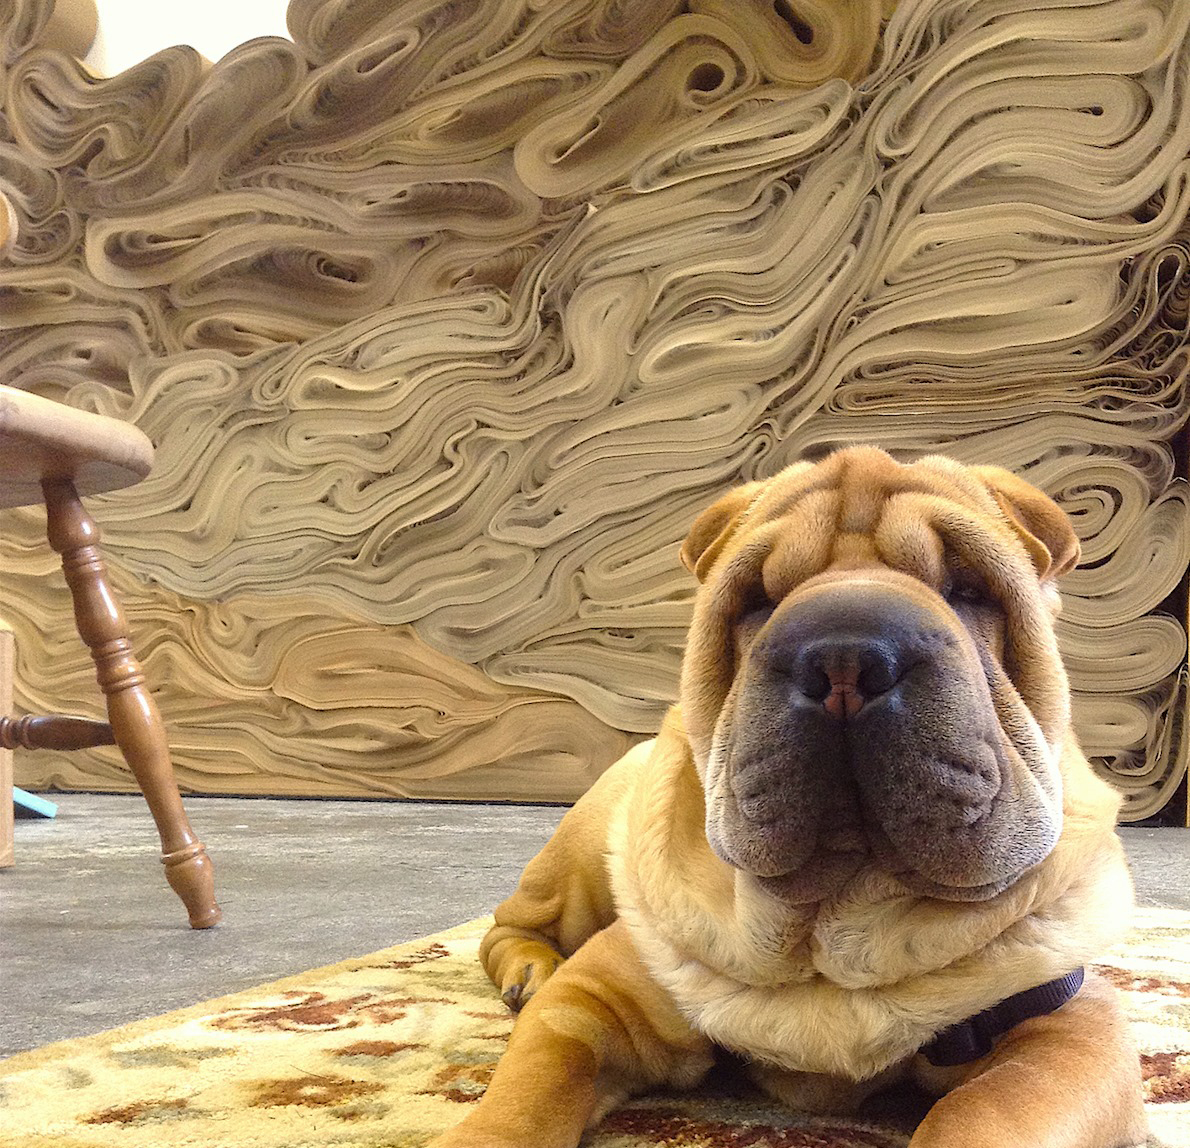 Photograph of a dog laying in front of an artwork made of rolls of paper